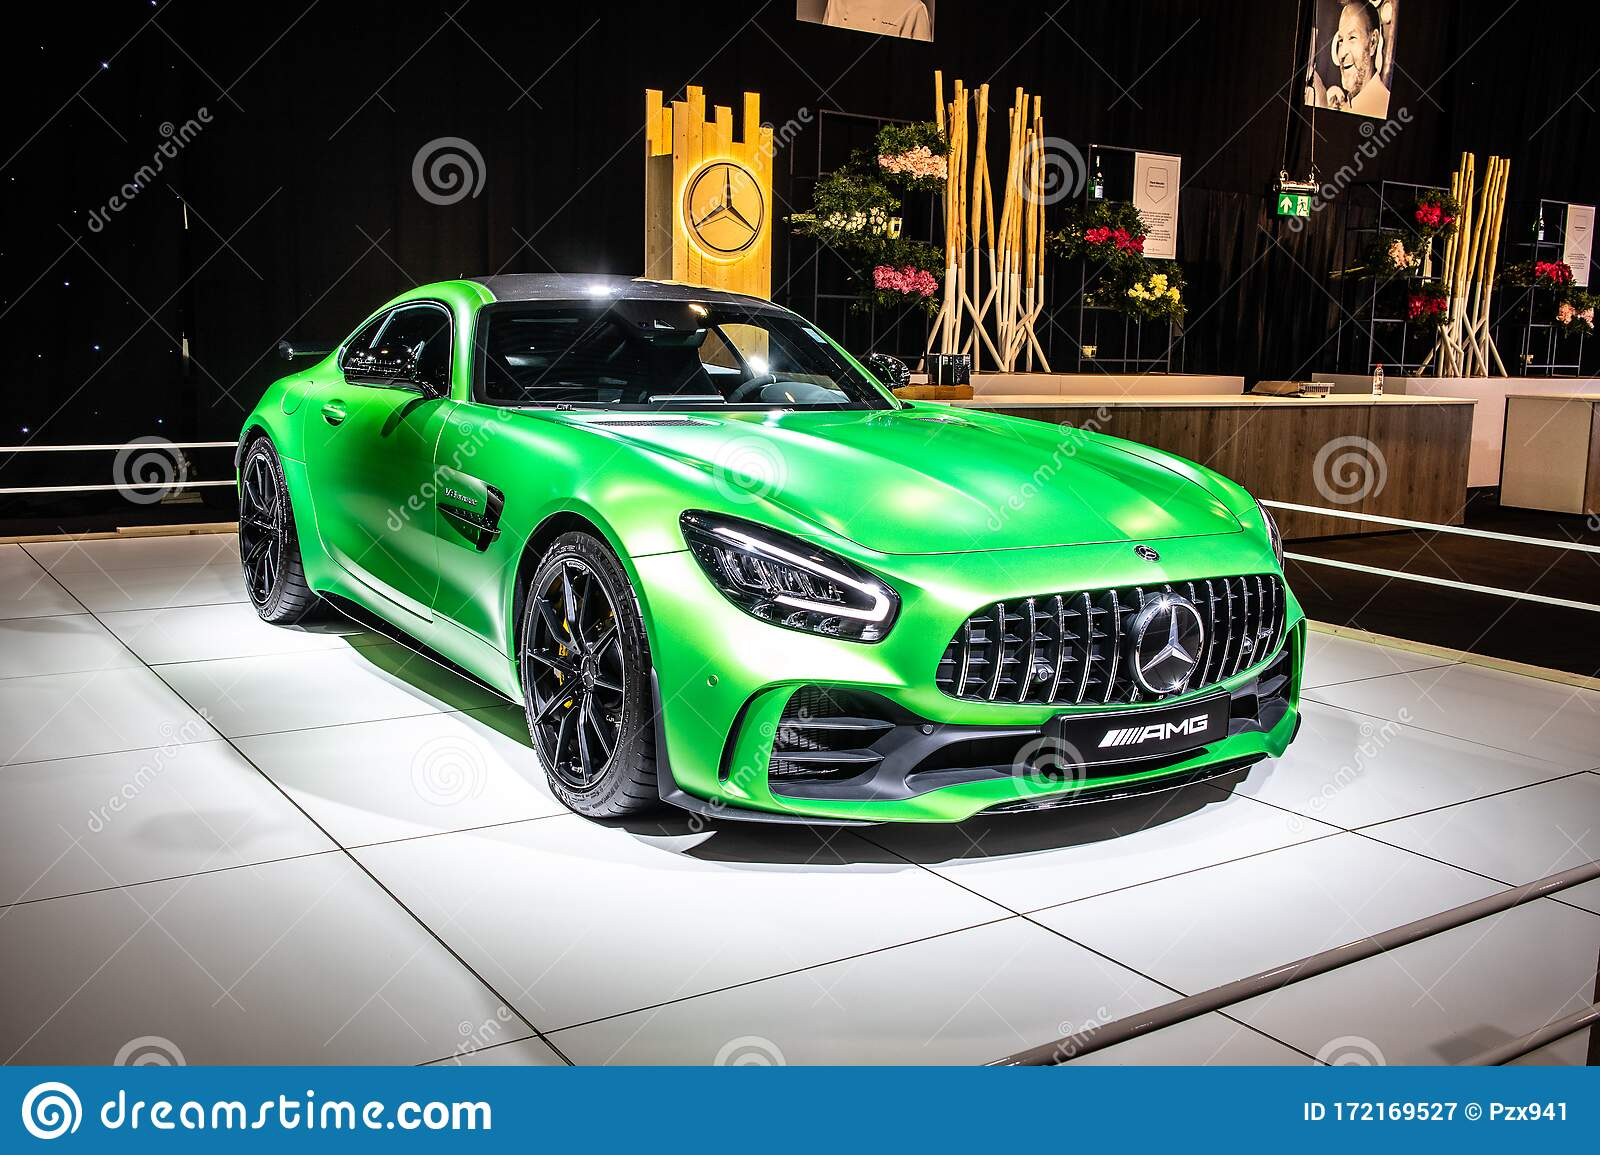 Mercedes Amg Gt R Roadster V8 Bi Turbo With M178 Engine Brussels Motor Show High Performance Sport Car Produced By Mercedes Benz Editorial Photography Image Of Drive Auto 172169527